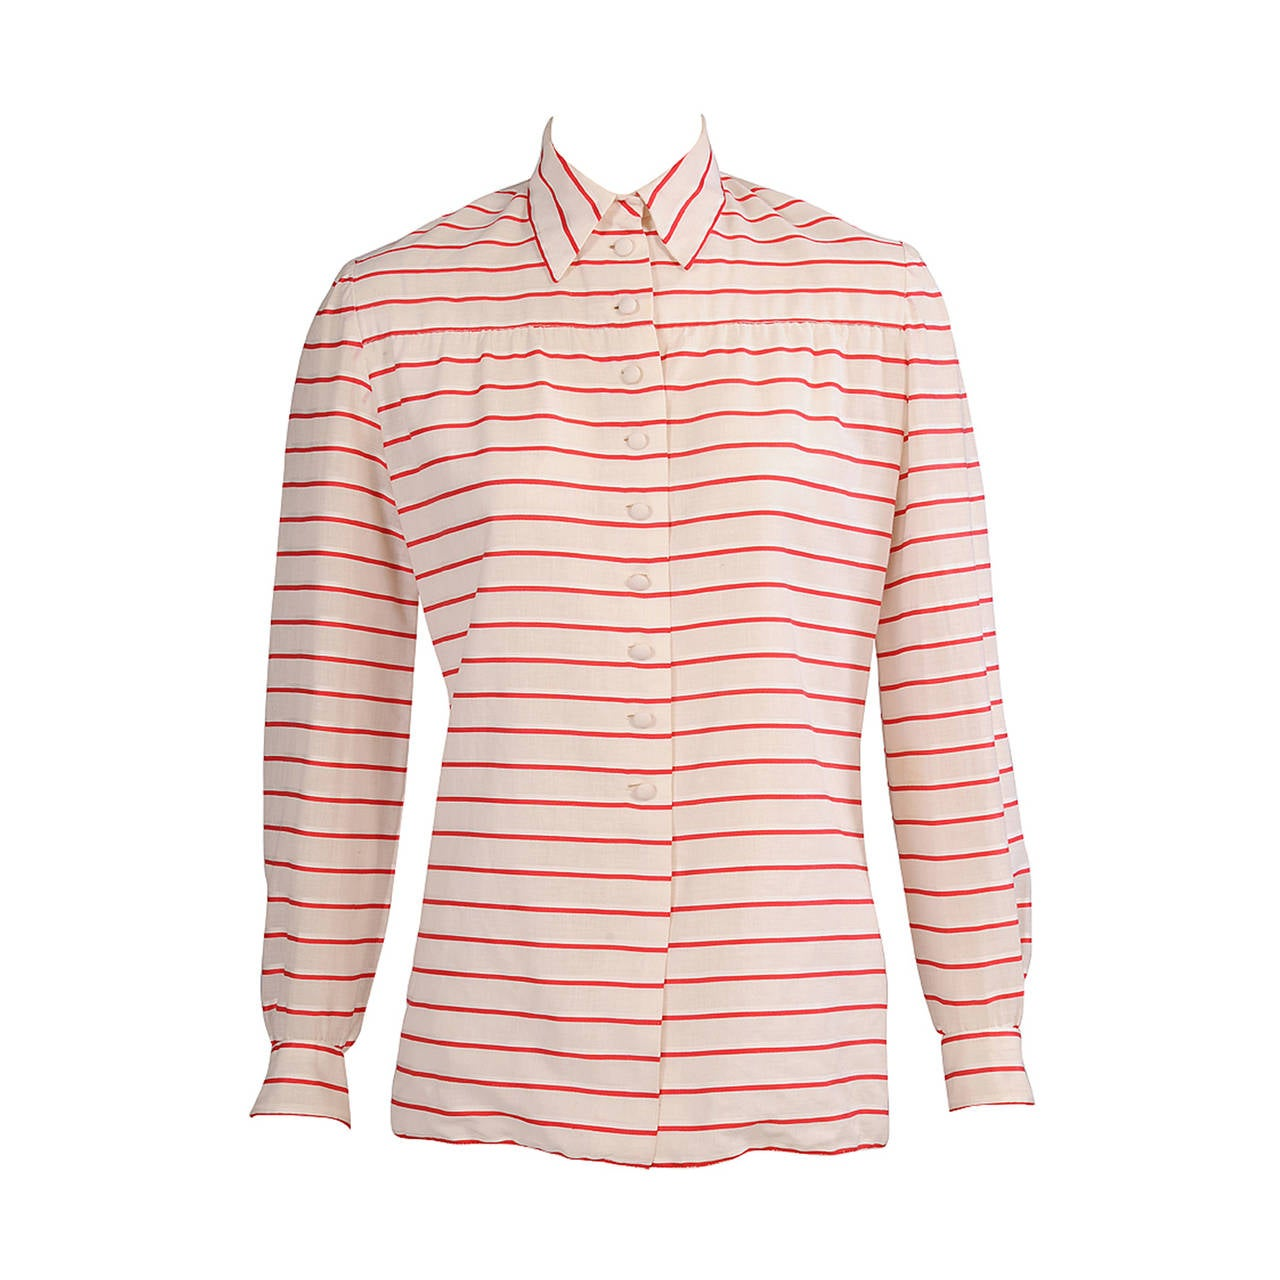 Chanel Red & White Striped Numbered Haute Couture Blouse For Sale